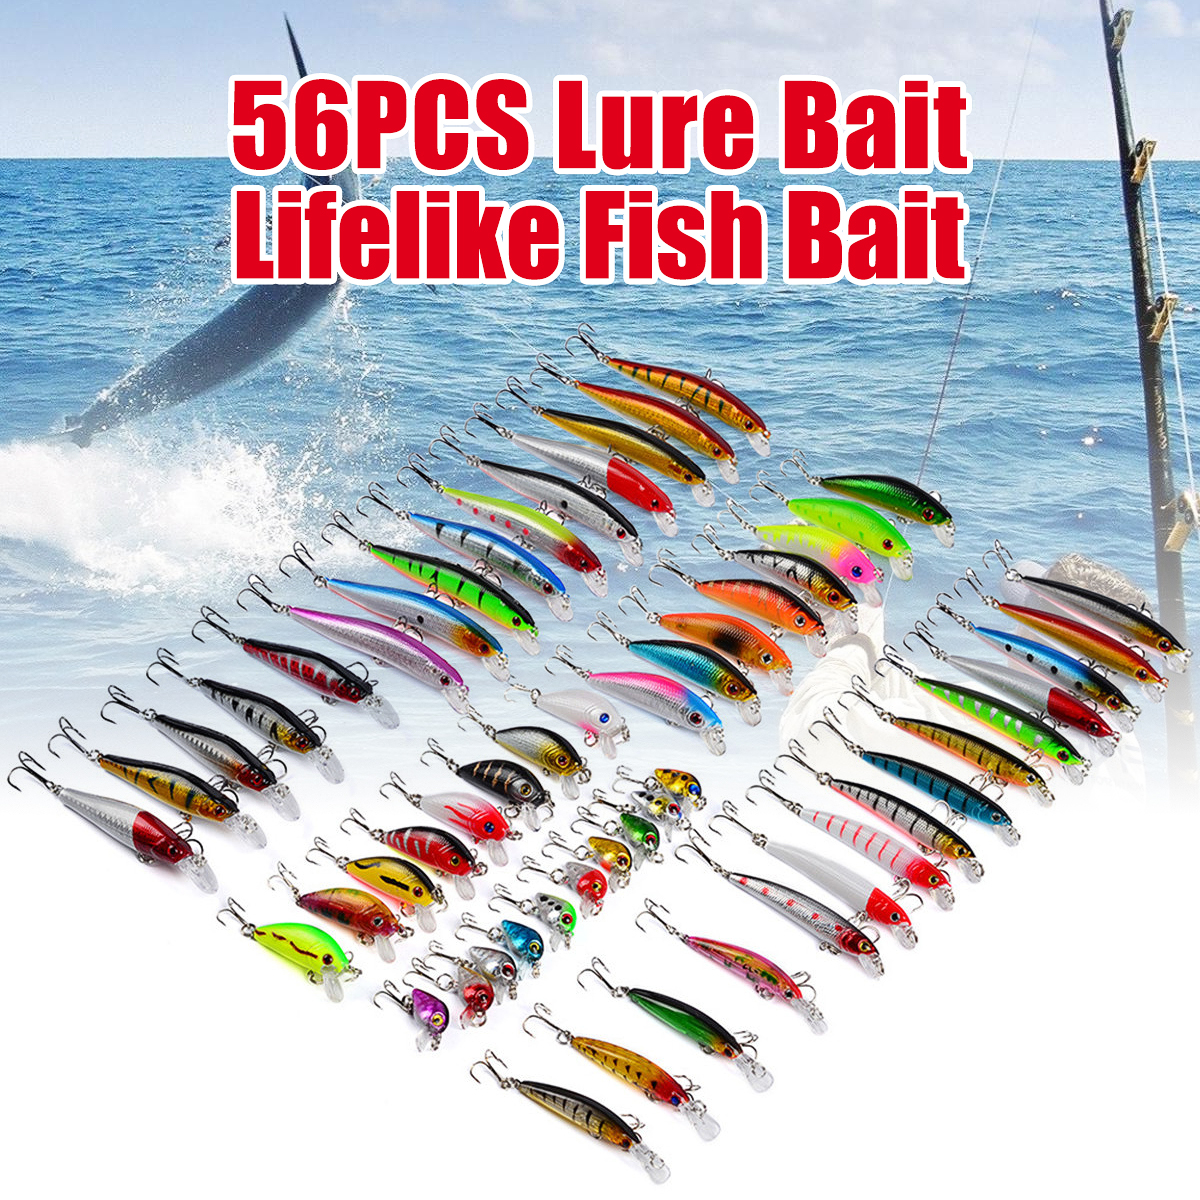 Details about  /56Pcs Mixed Color Fishing Lures Assortment Fake Bionic Baits Fish Hooks Tackle